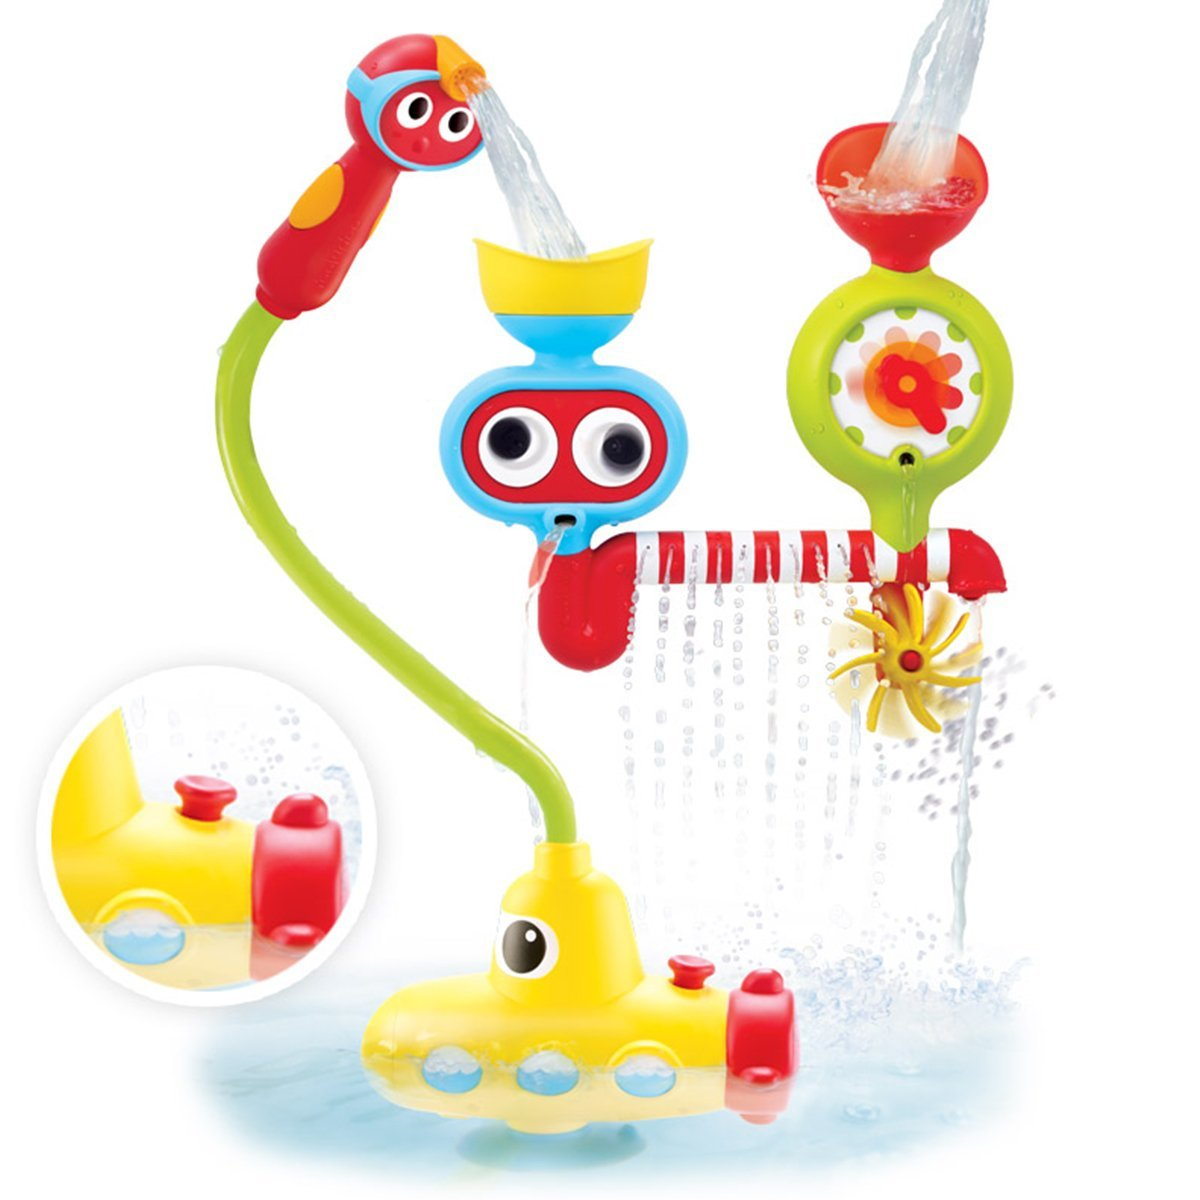 yookidoo submarine spray station, battery operated bath toy, squirter bath toy, water play bath toy, baby bath toys